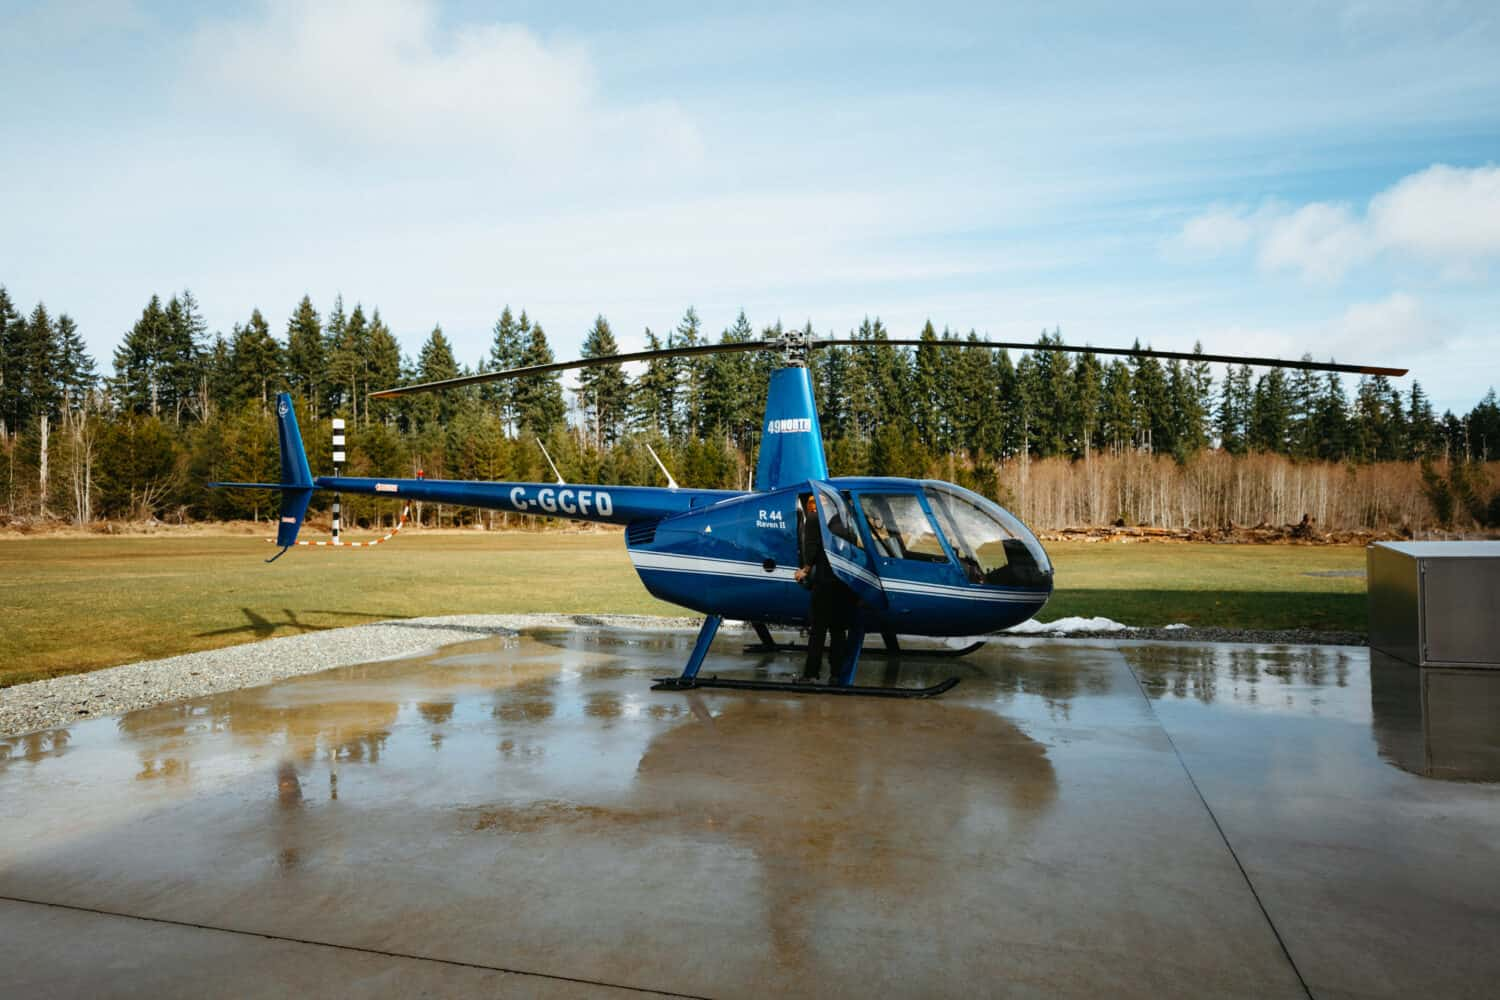 Scenic and Charter Flights in Tofino, BC